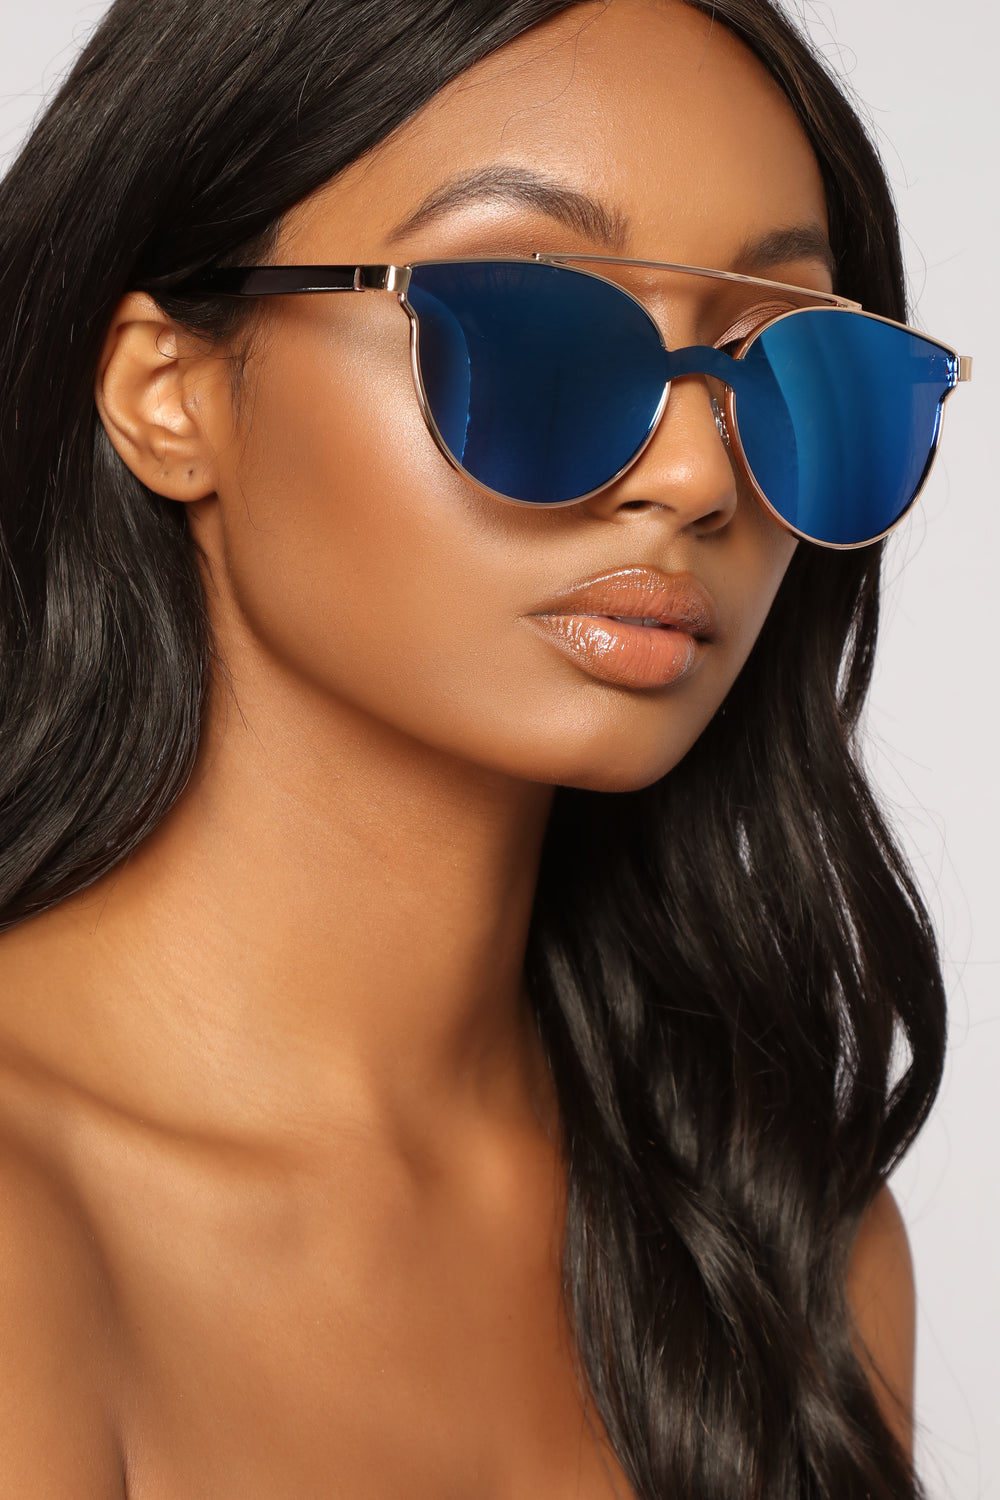 Pamela Aviator Sunglasses - Blue